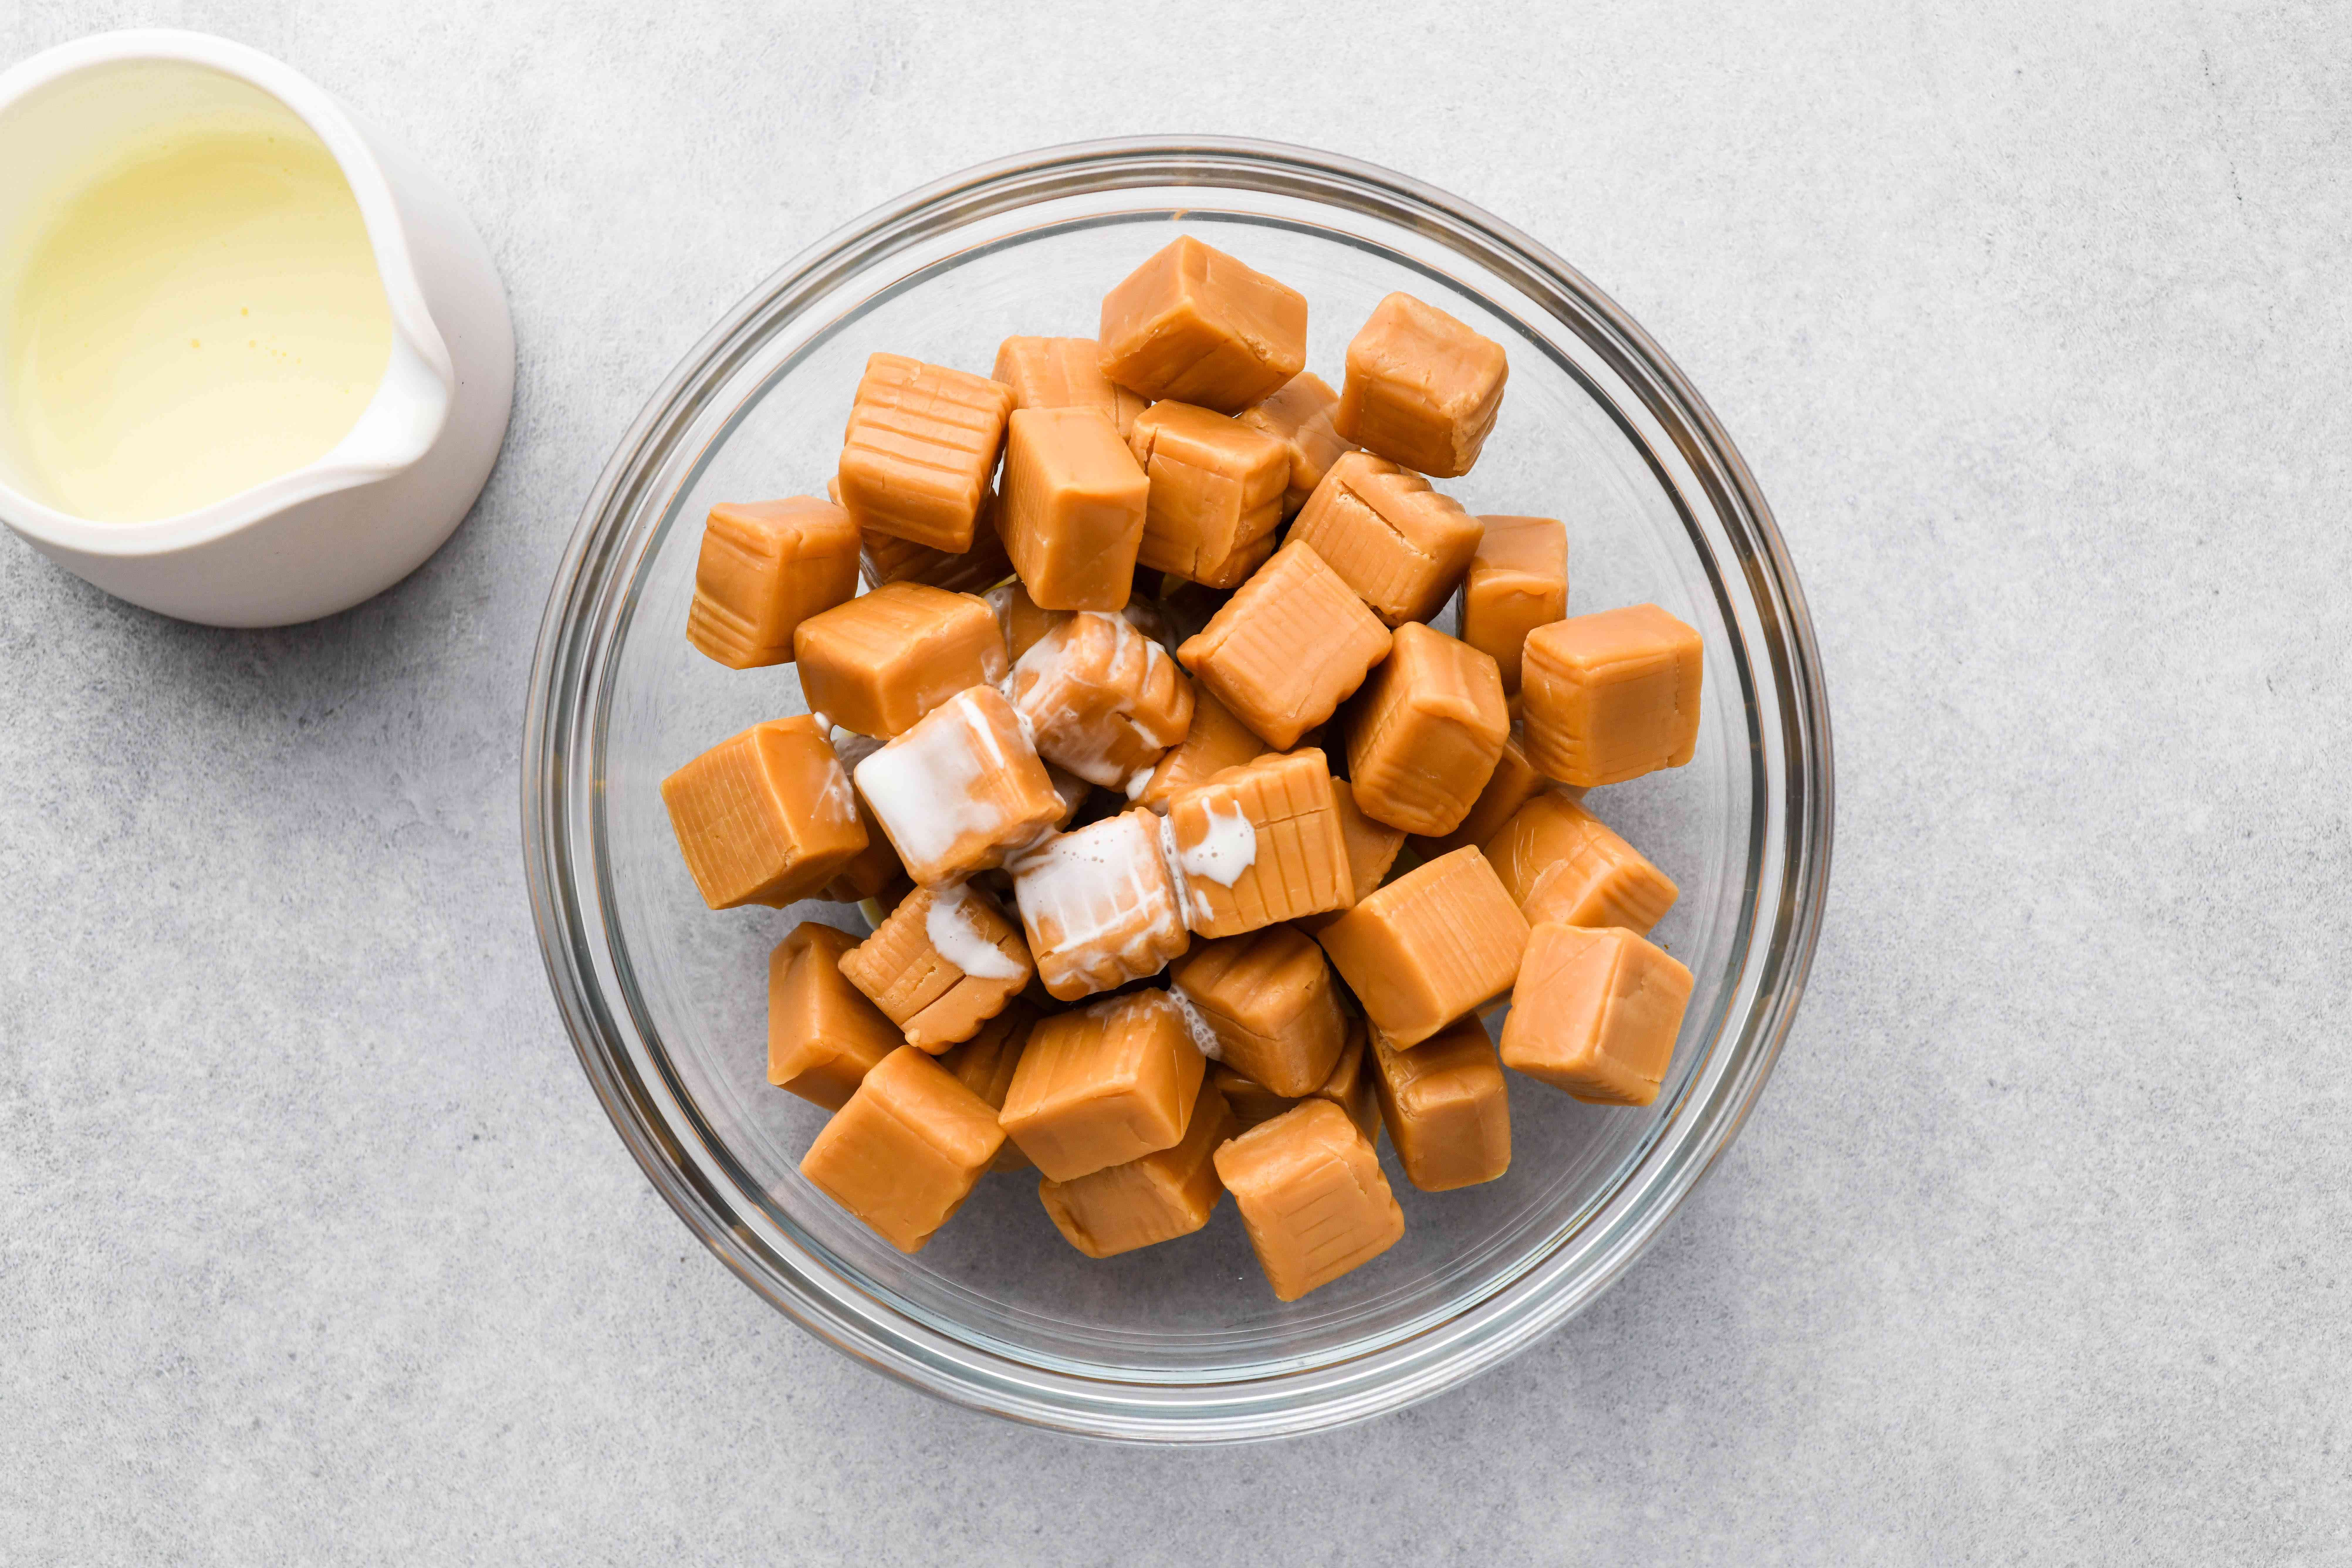 Combine the unwrapped caramels and cream in a bowl